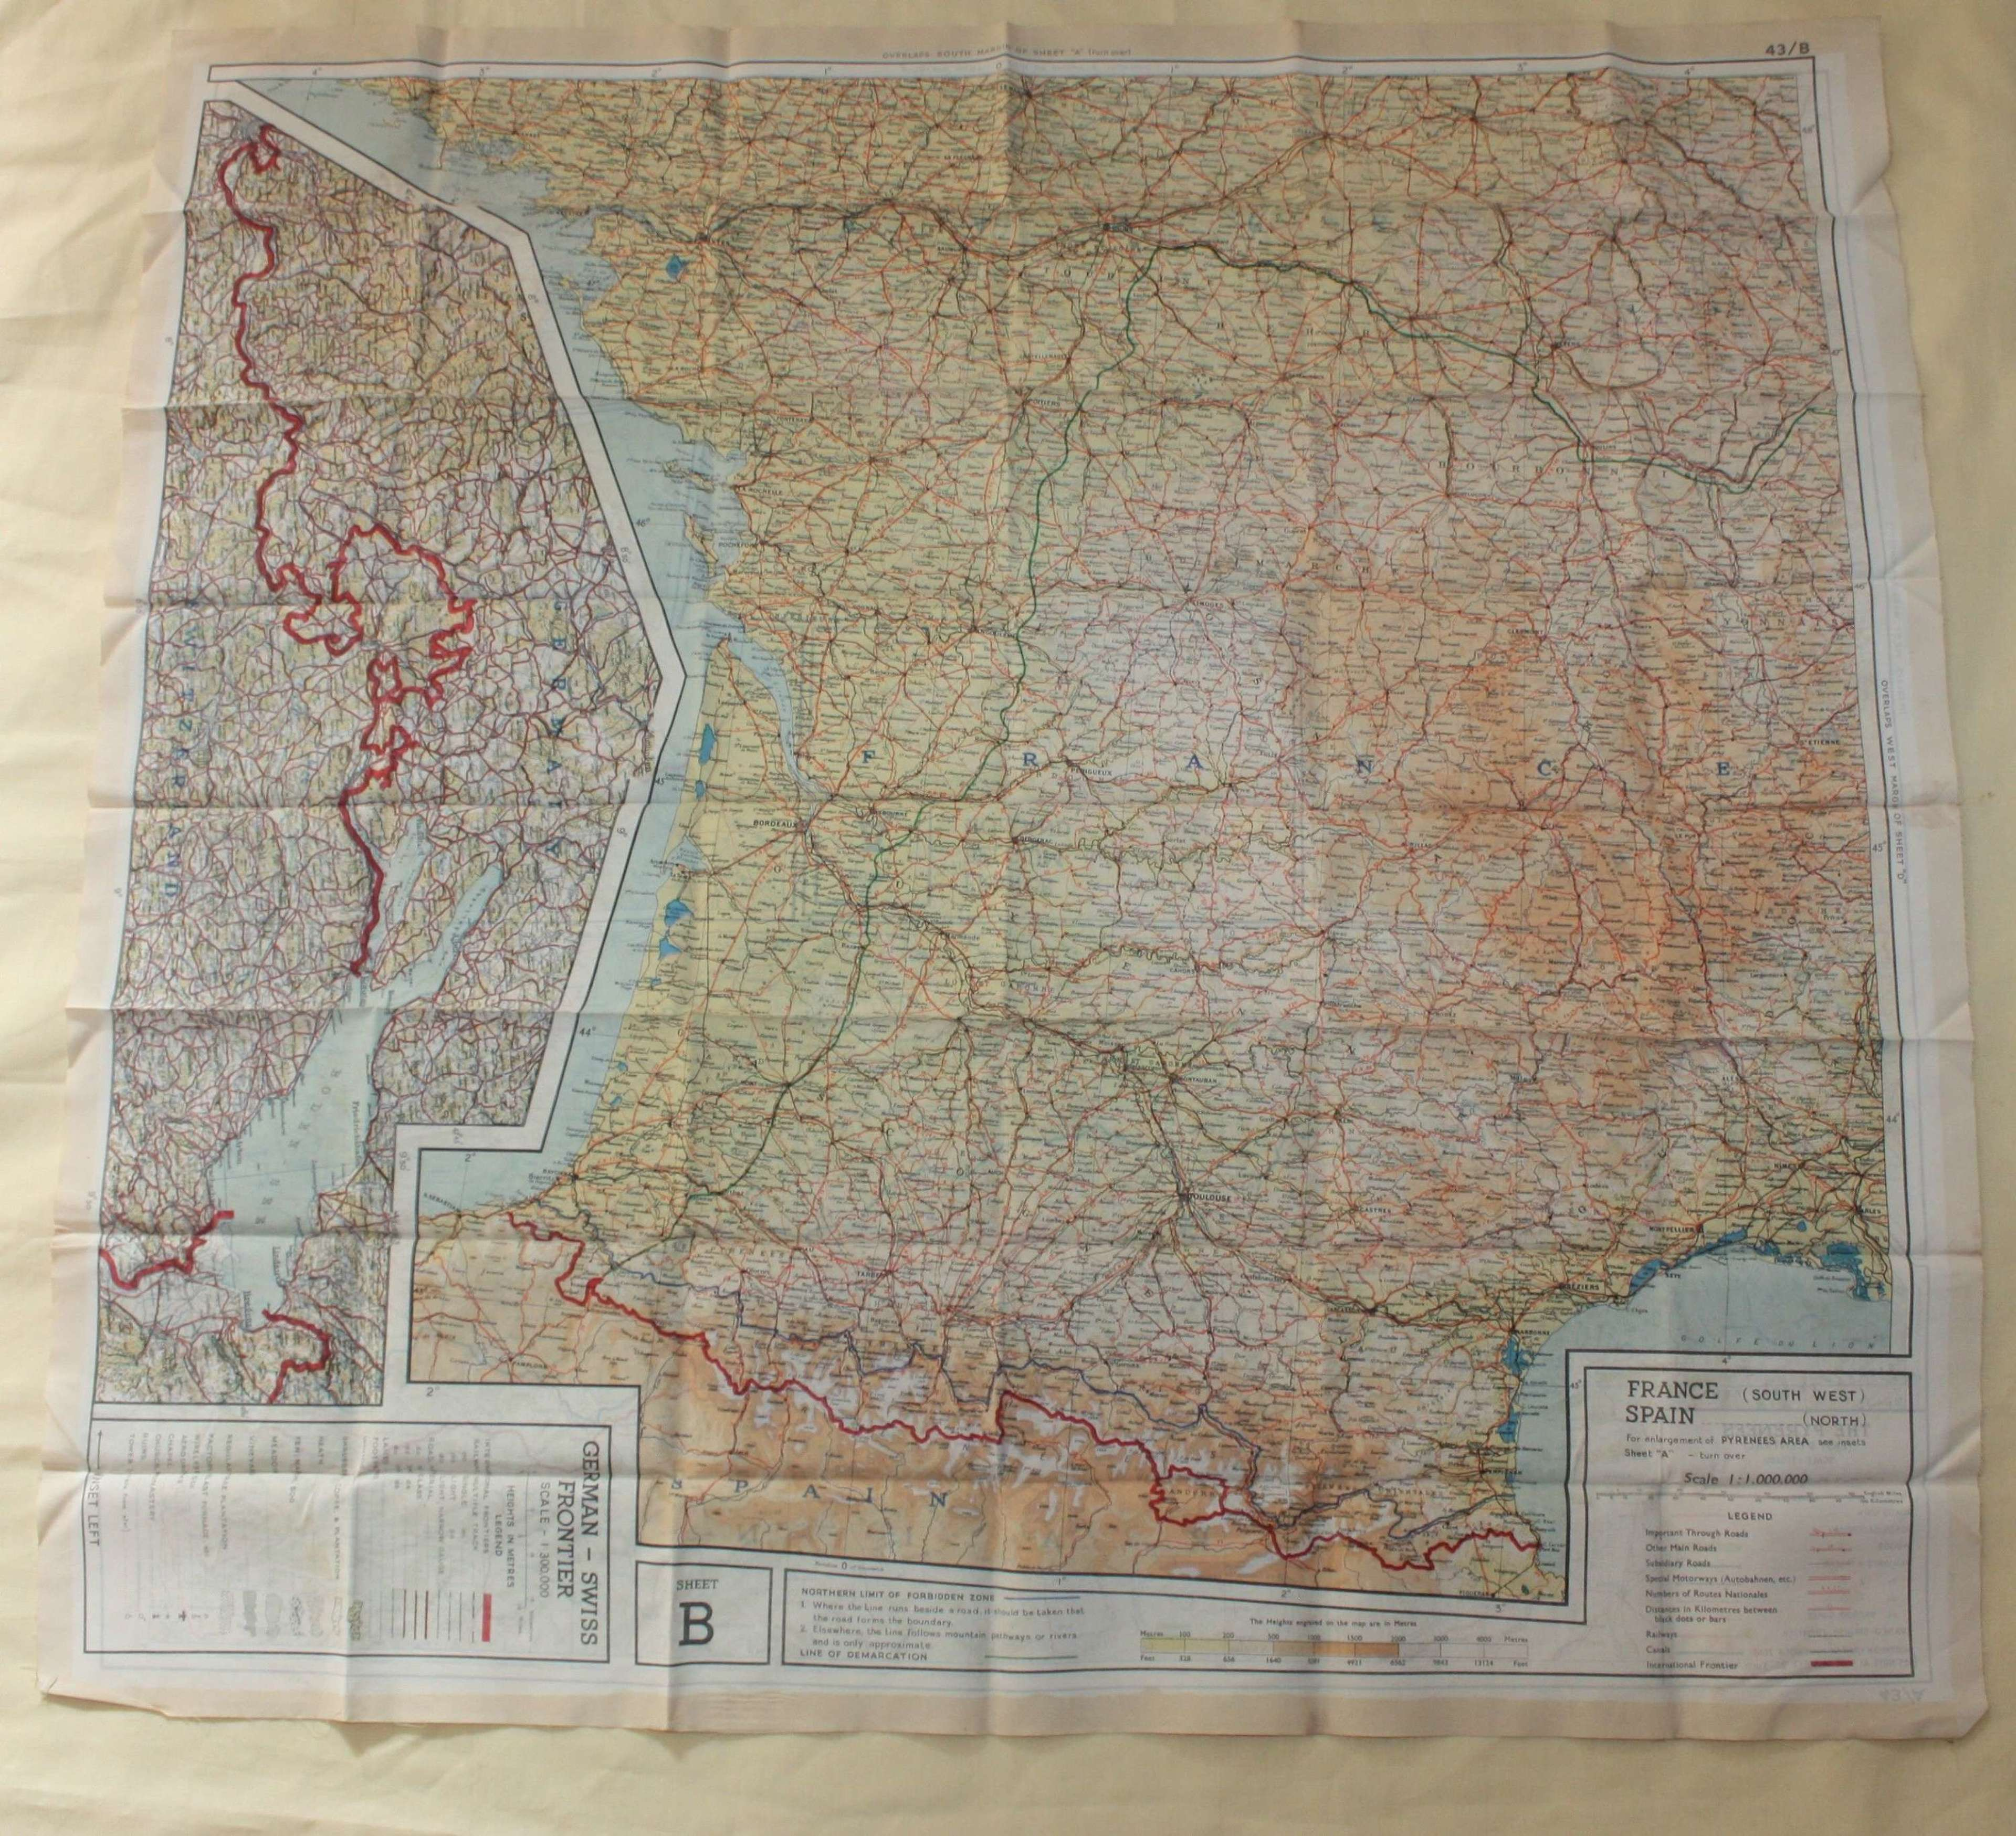 A VERY GOOD WWII RAF ESCAPE MAP CENTRAL EUROPE FRANCE , SWISS BOARDERS